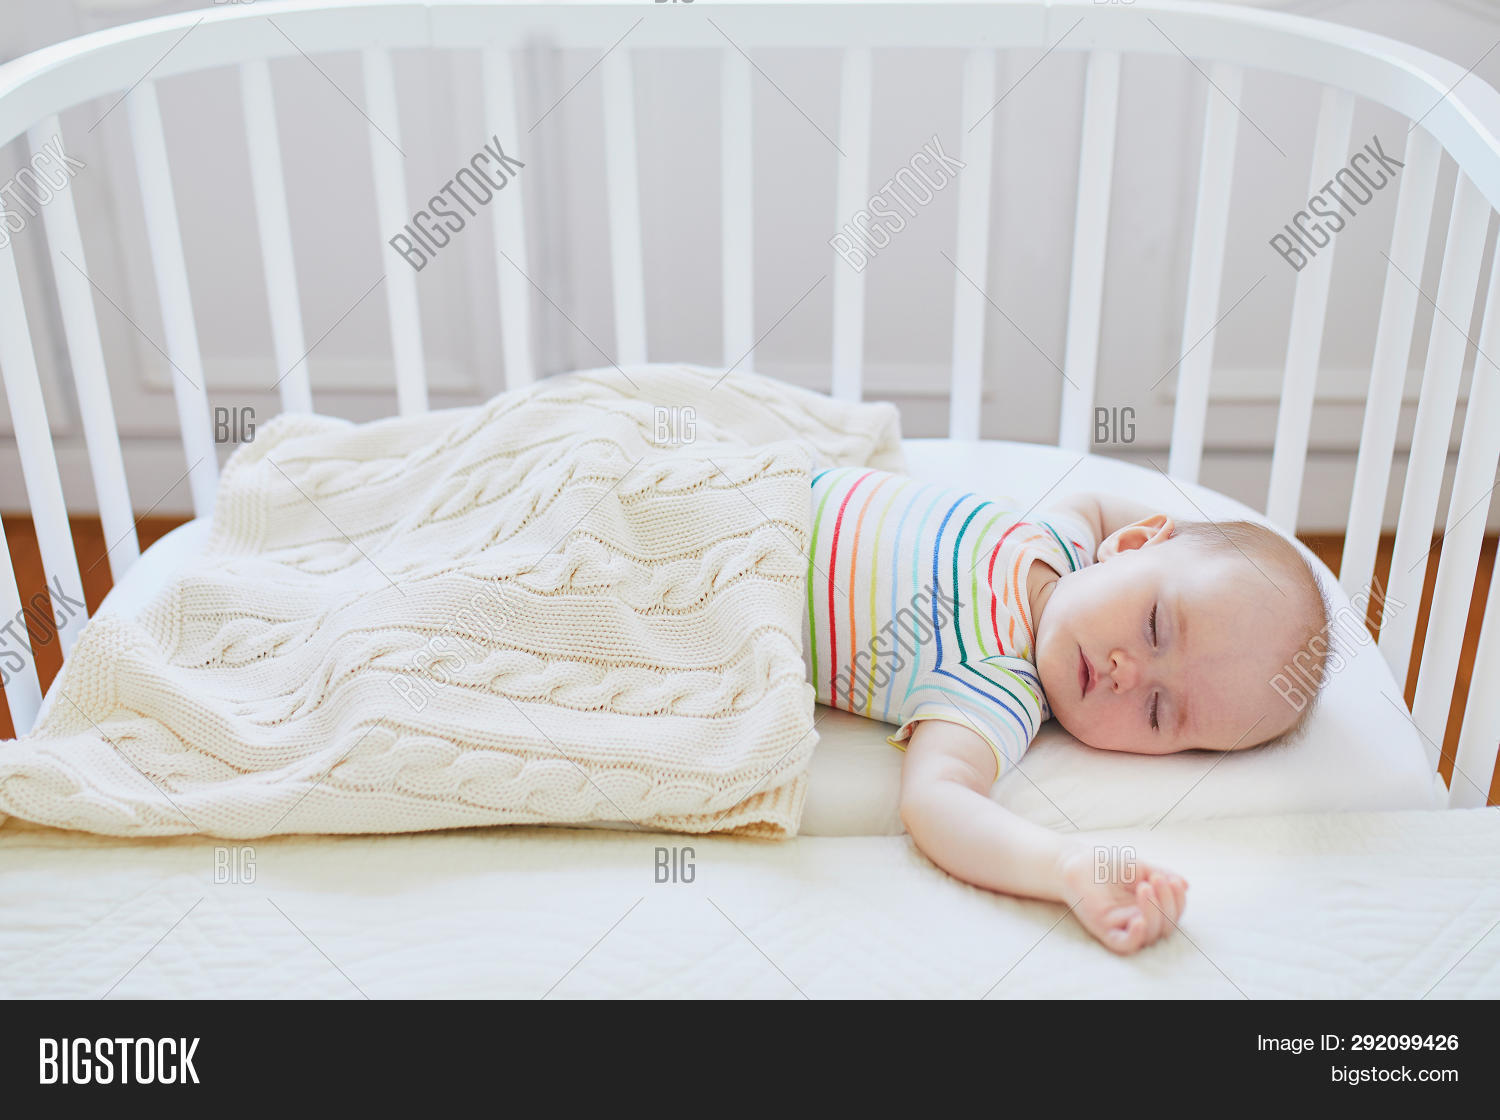 Baby Cots That Attach To Beds Baby Sleeping Co Image Photo Free Trial Bigstock